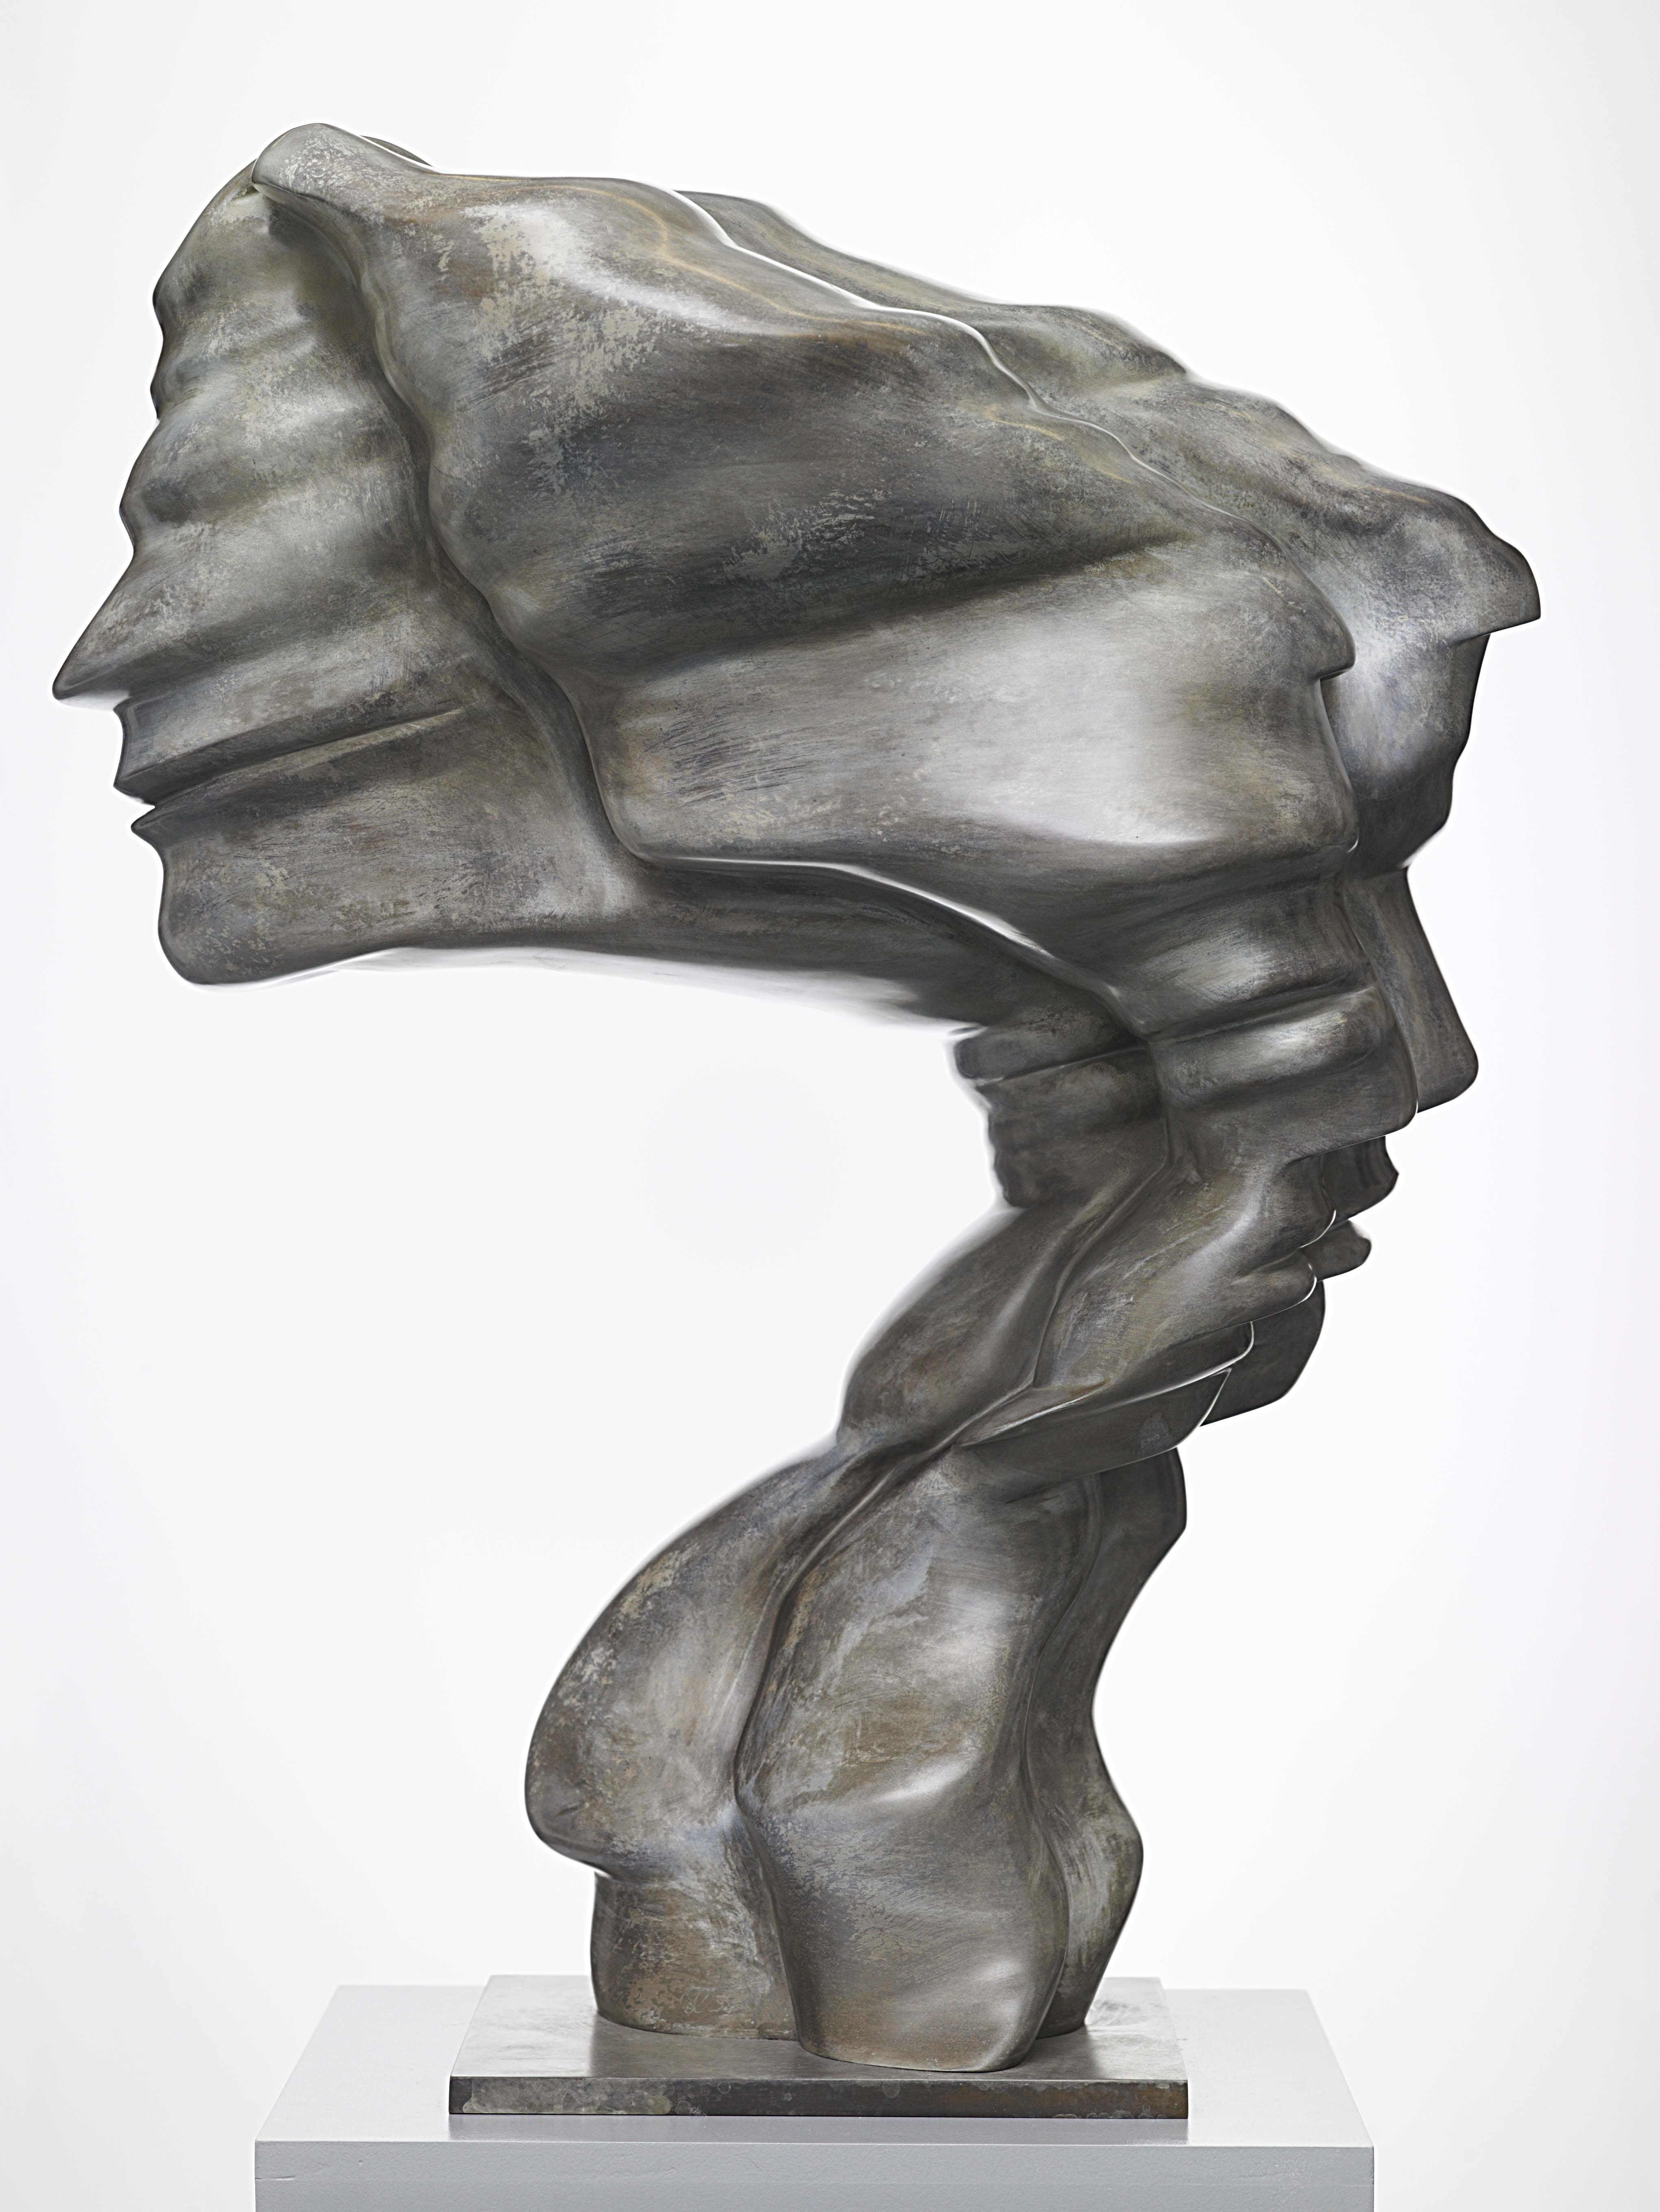 Tony Cragg, Big Head